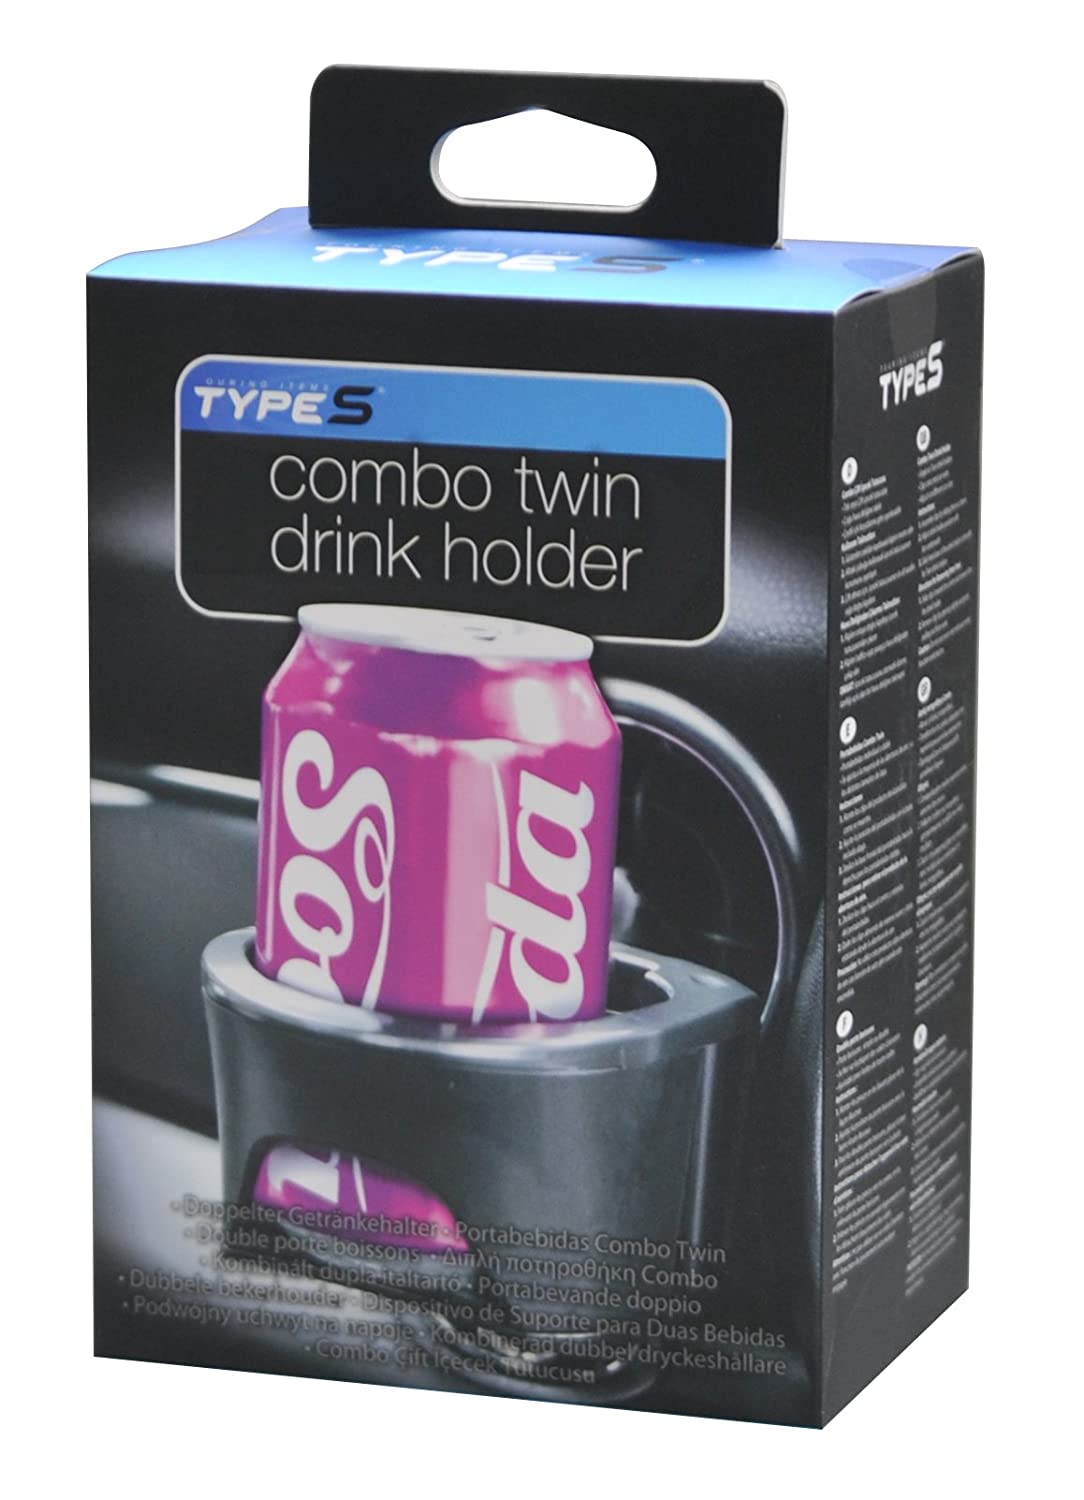 Type S DH53171 Combo Twin Drink Holder Black